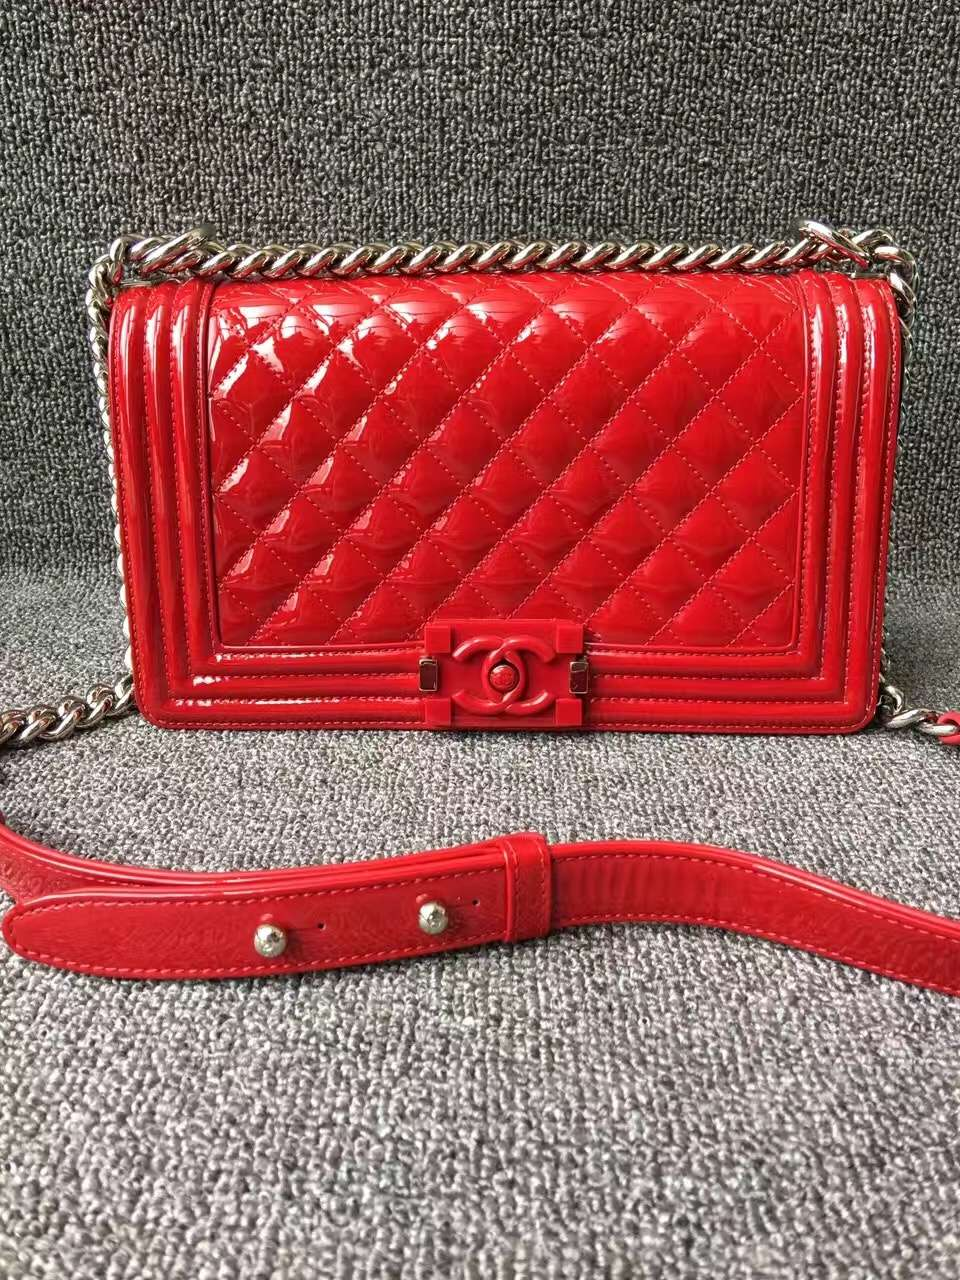 fe4f8109ea9d Chanel Boy Medium in Red Candy — CONSIGNMENT BOULEVARD